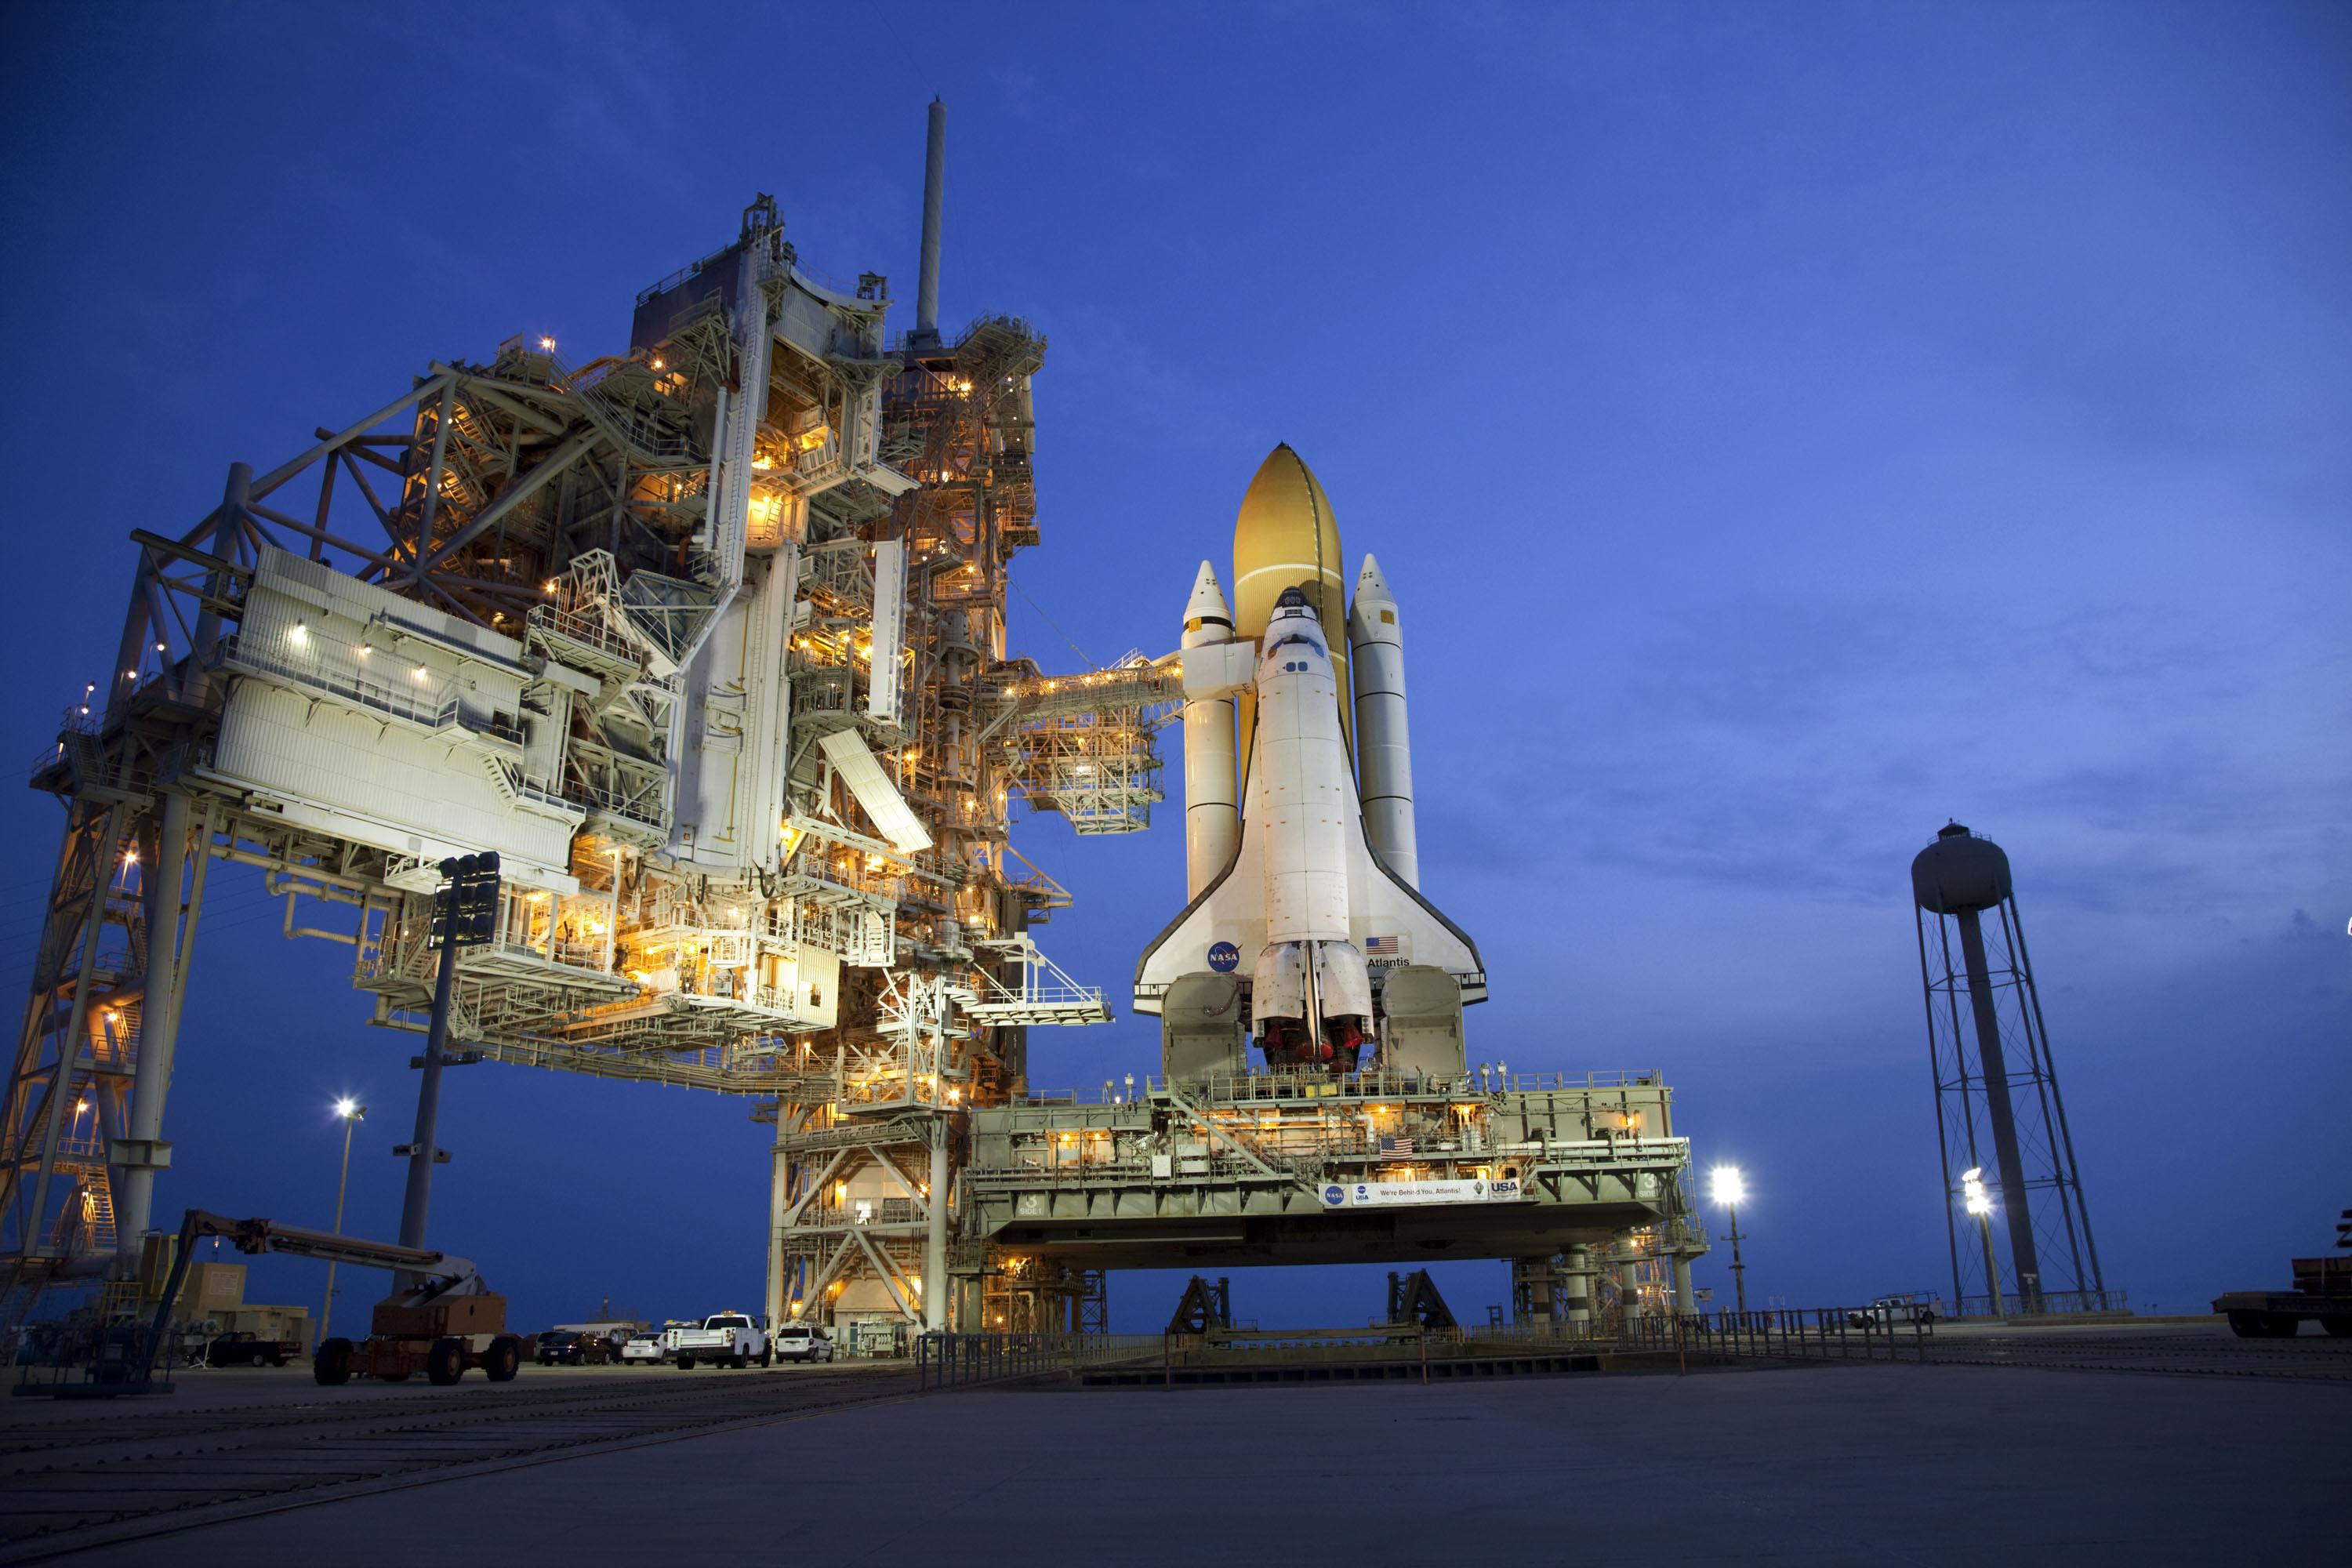 sts 135 space shuttle atlantis - photo #35